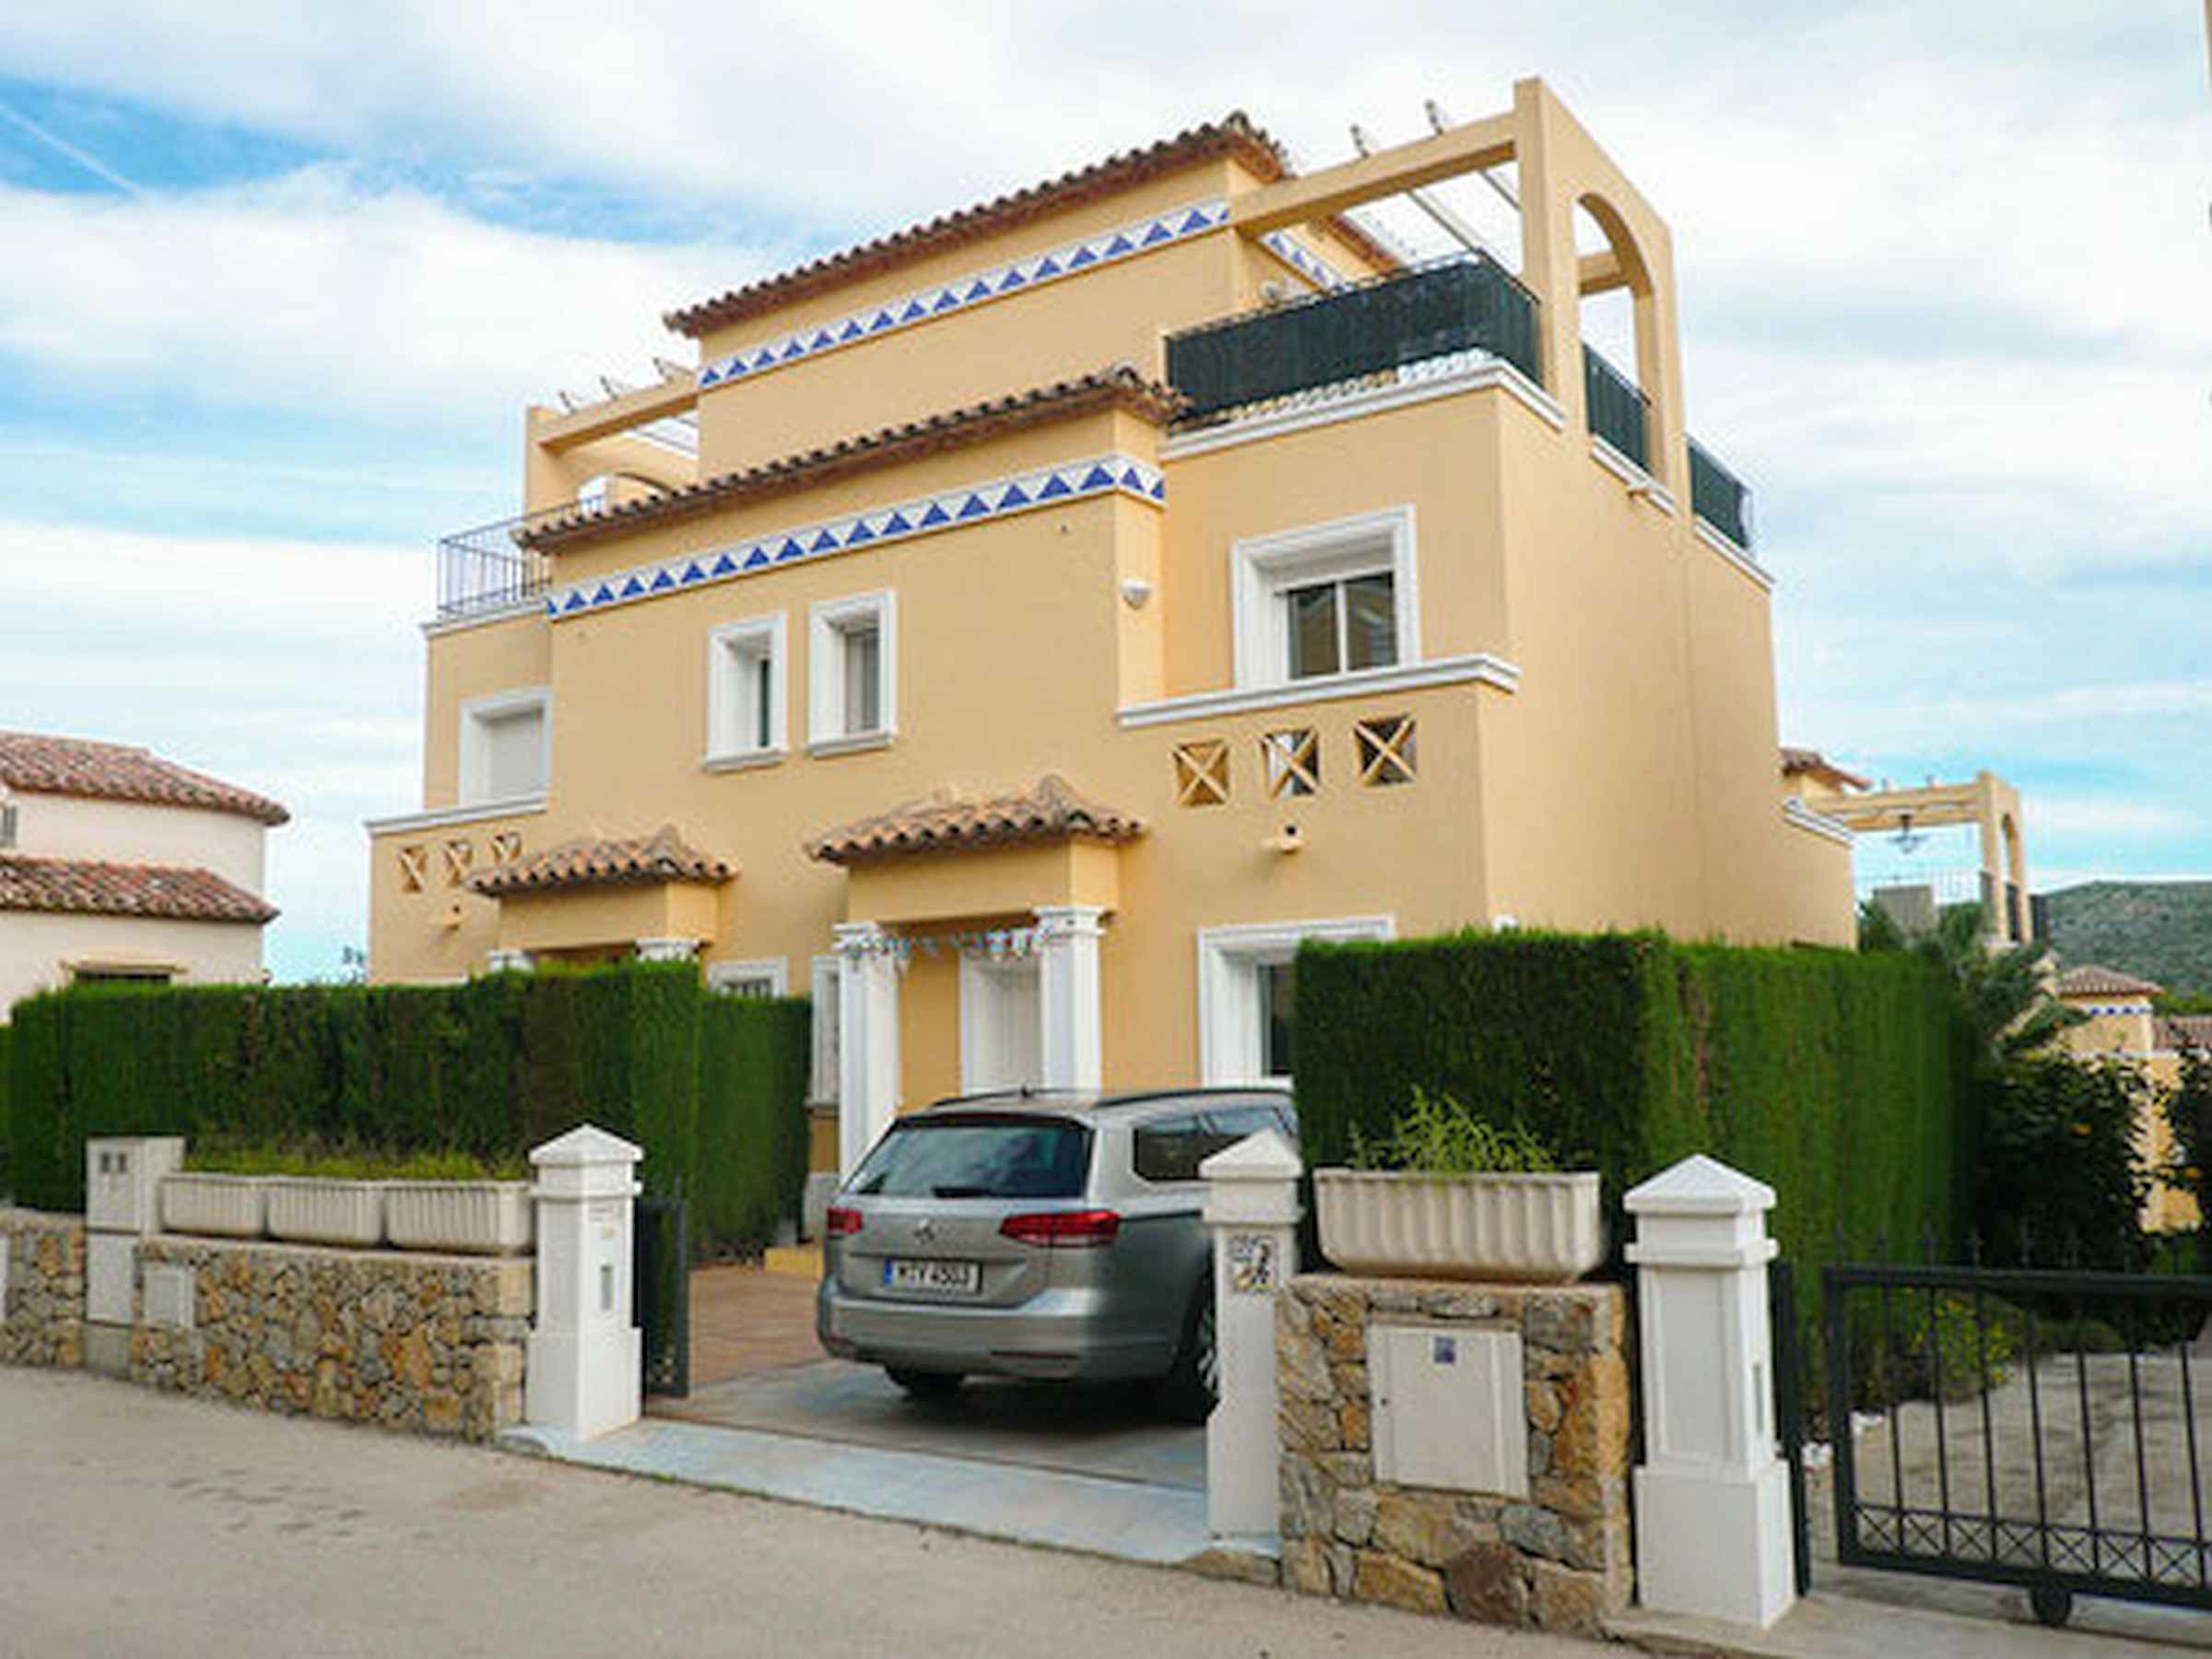 Golf holiday house in muntanya de la sella/pedreguer, spain ...